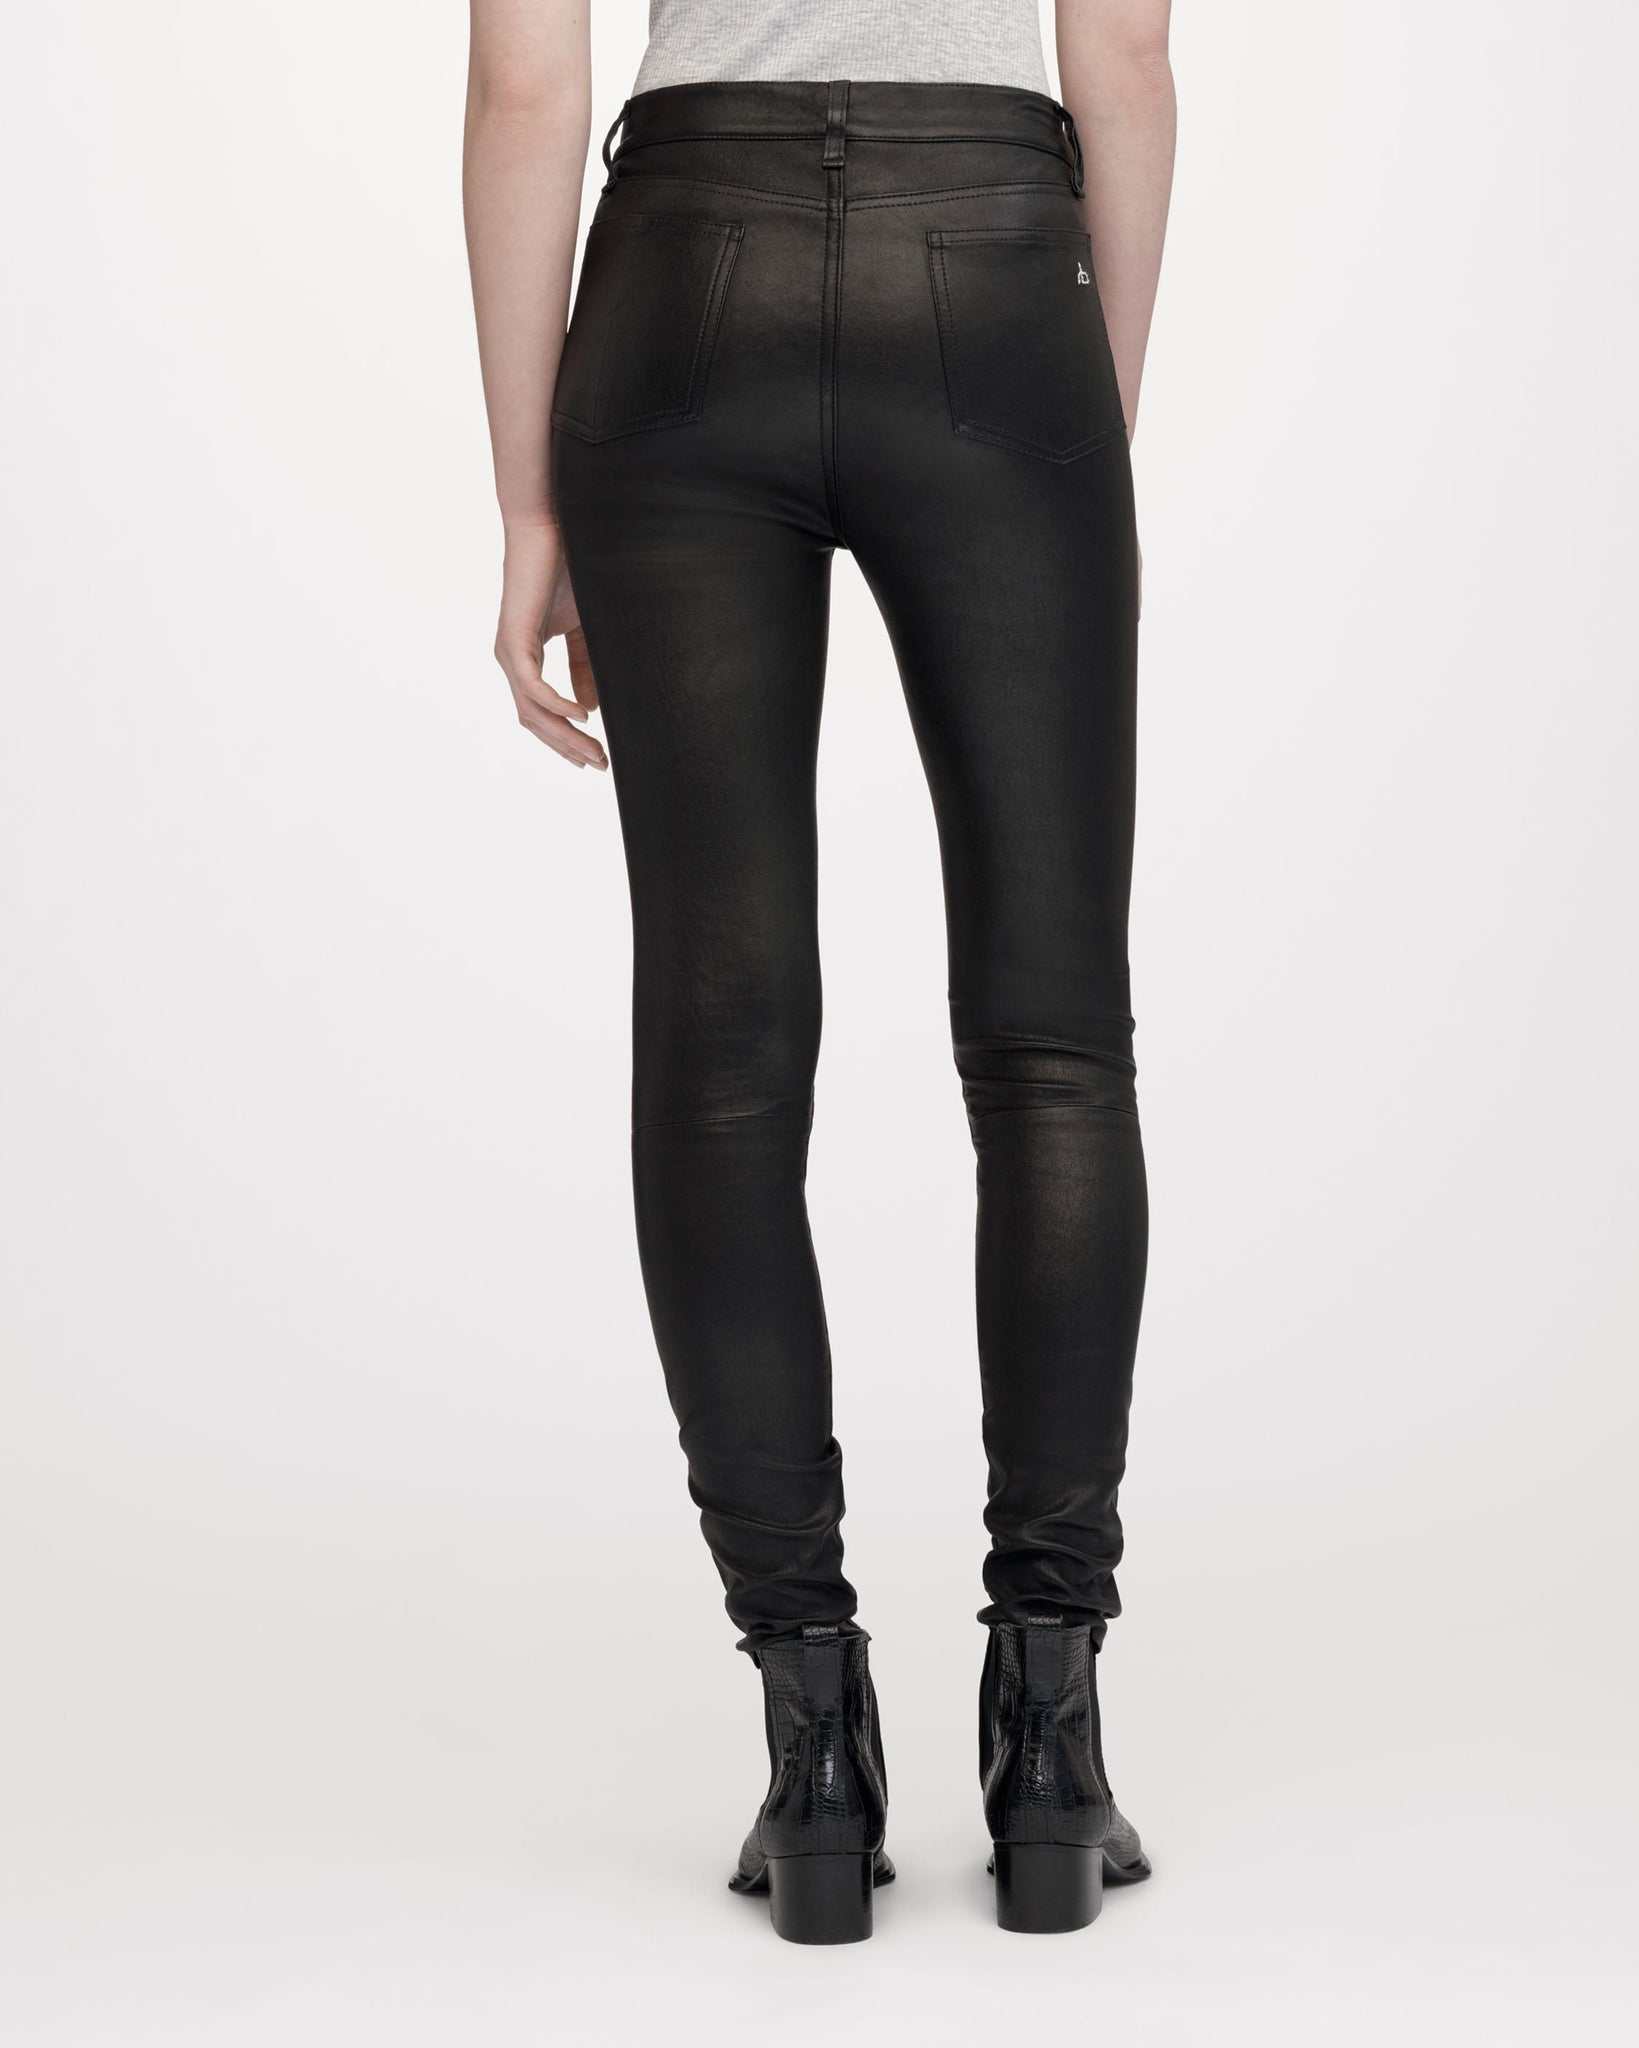 Rag & Bone Womens Pants BLACKLEATHER / 24 Rag & Bone | High Rise Skinny - Black Leather